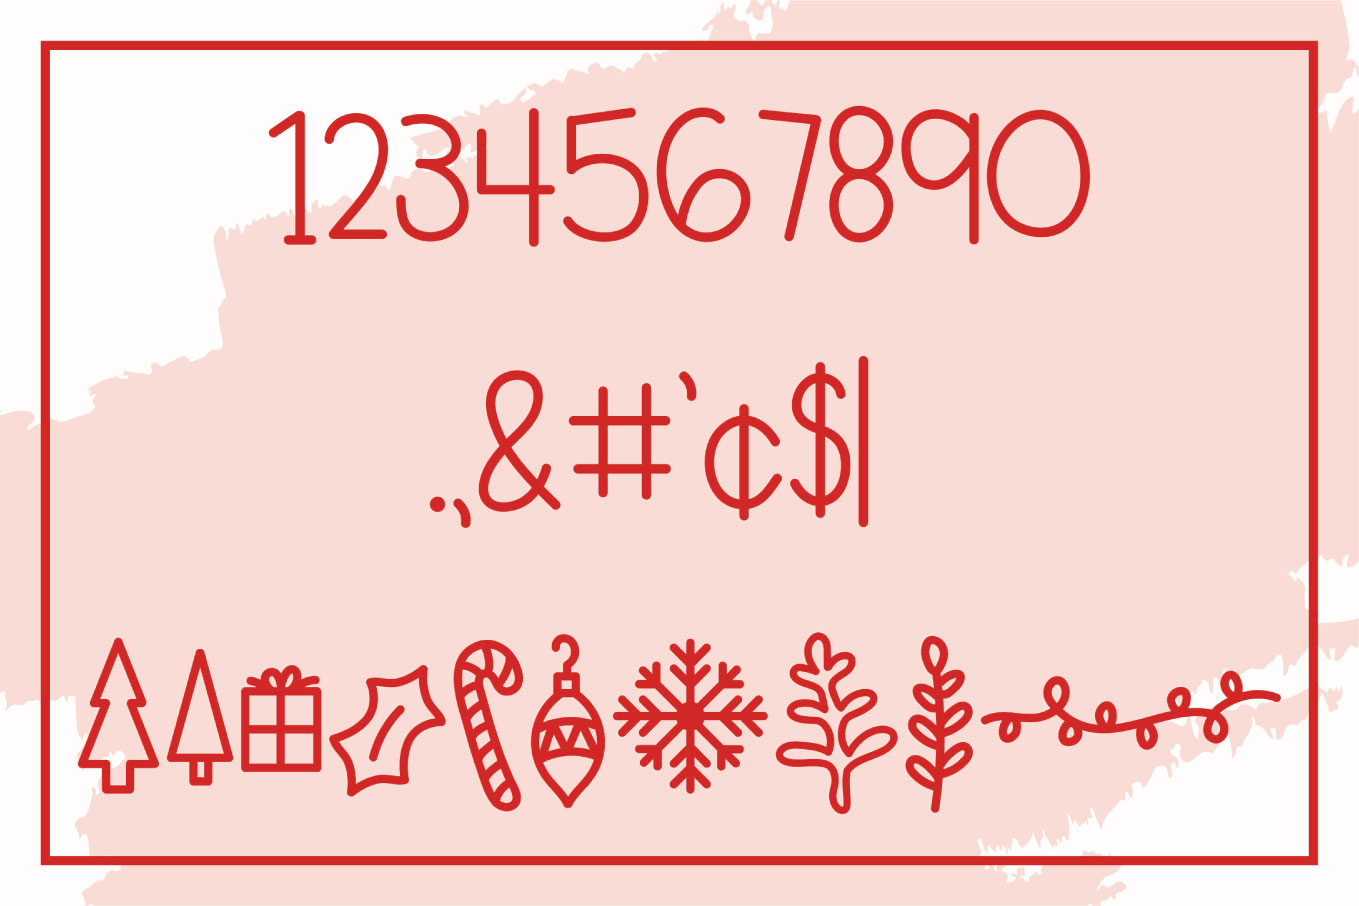 Figgy Pudding - A Christmas Font with Doodles example image 3